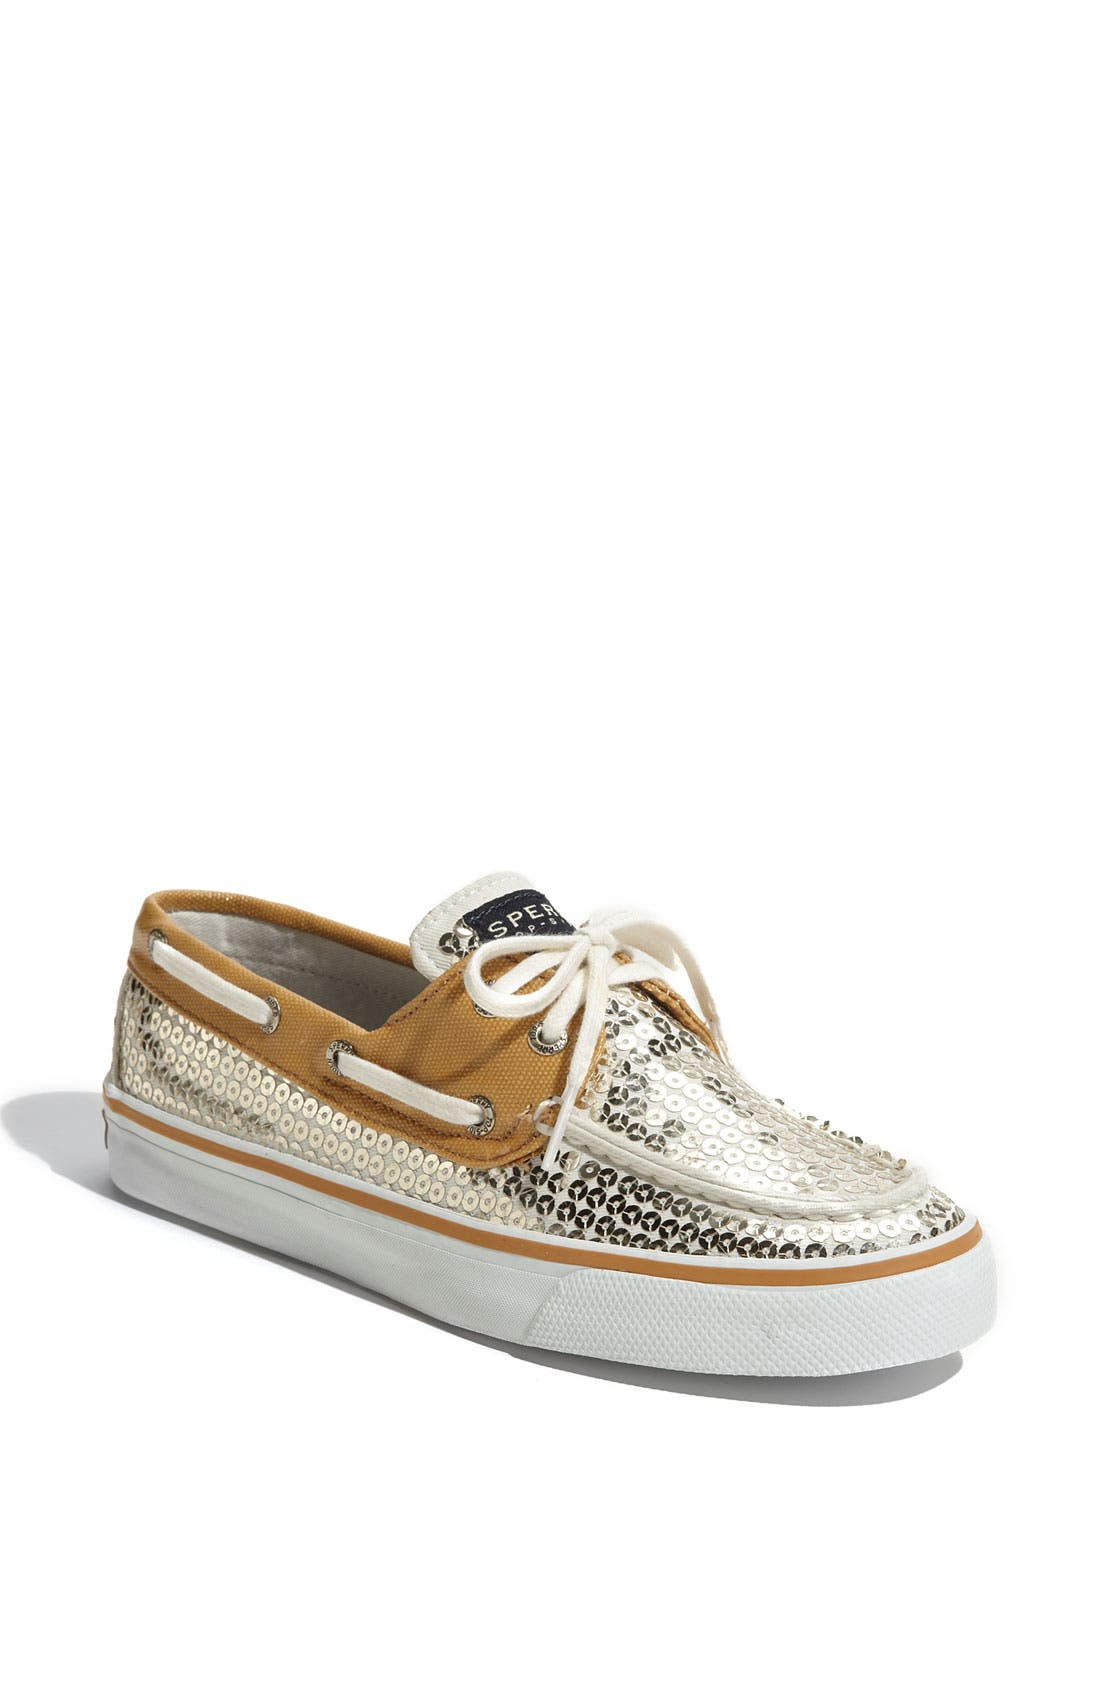 Top-Sider<sup>®</sup> 'Bahama' Sequined Boat Shoe,                             Main thumbnail 45, color,